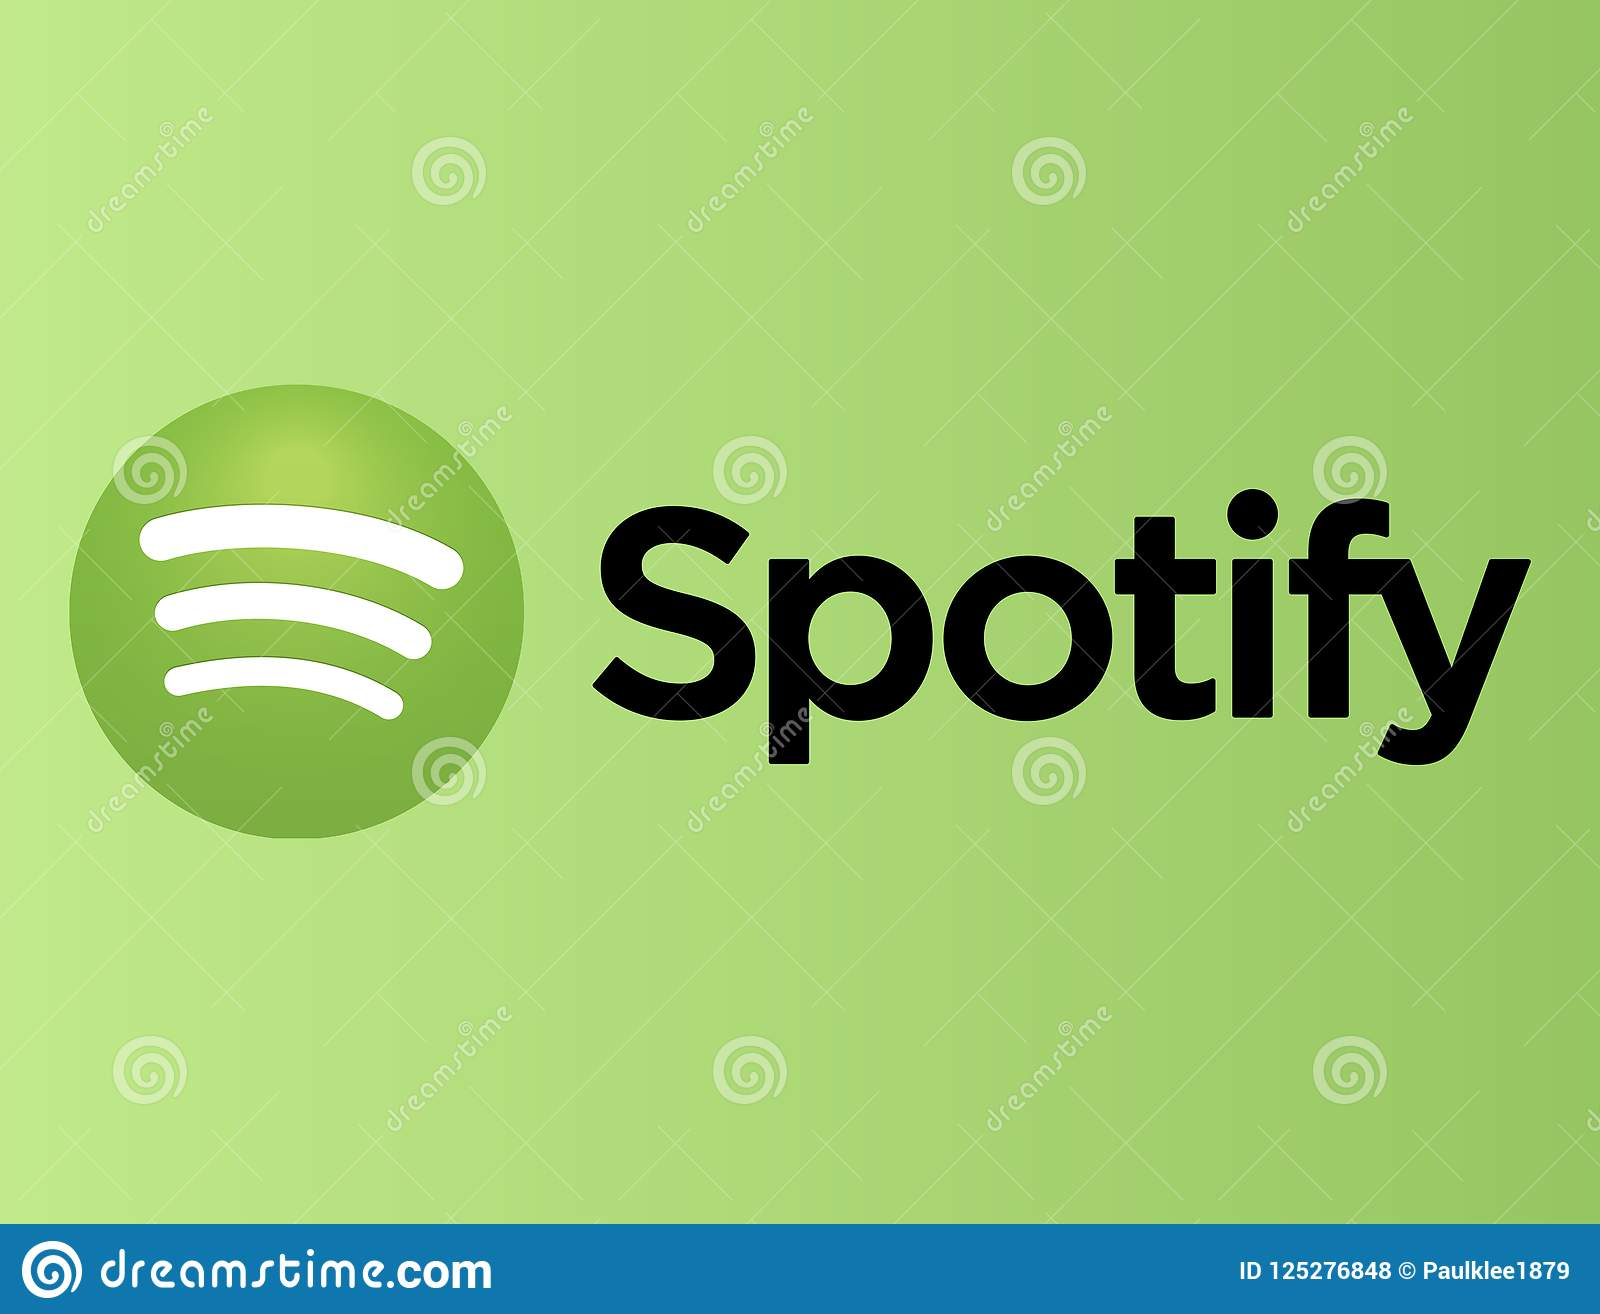 Spotify logo on green paper